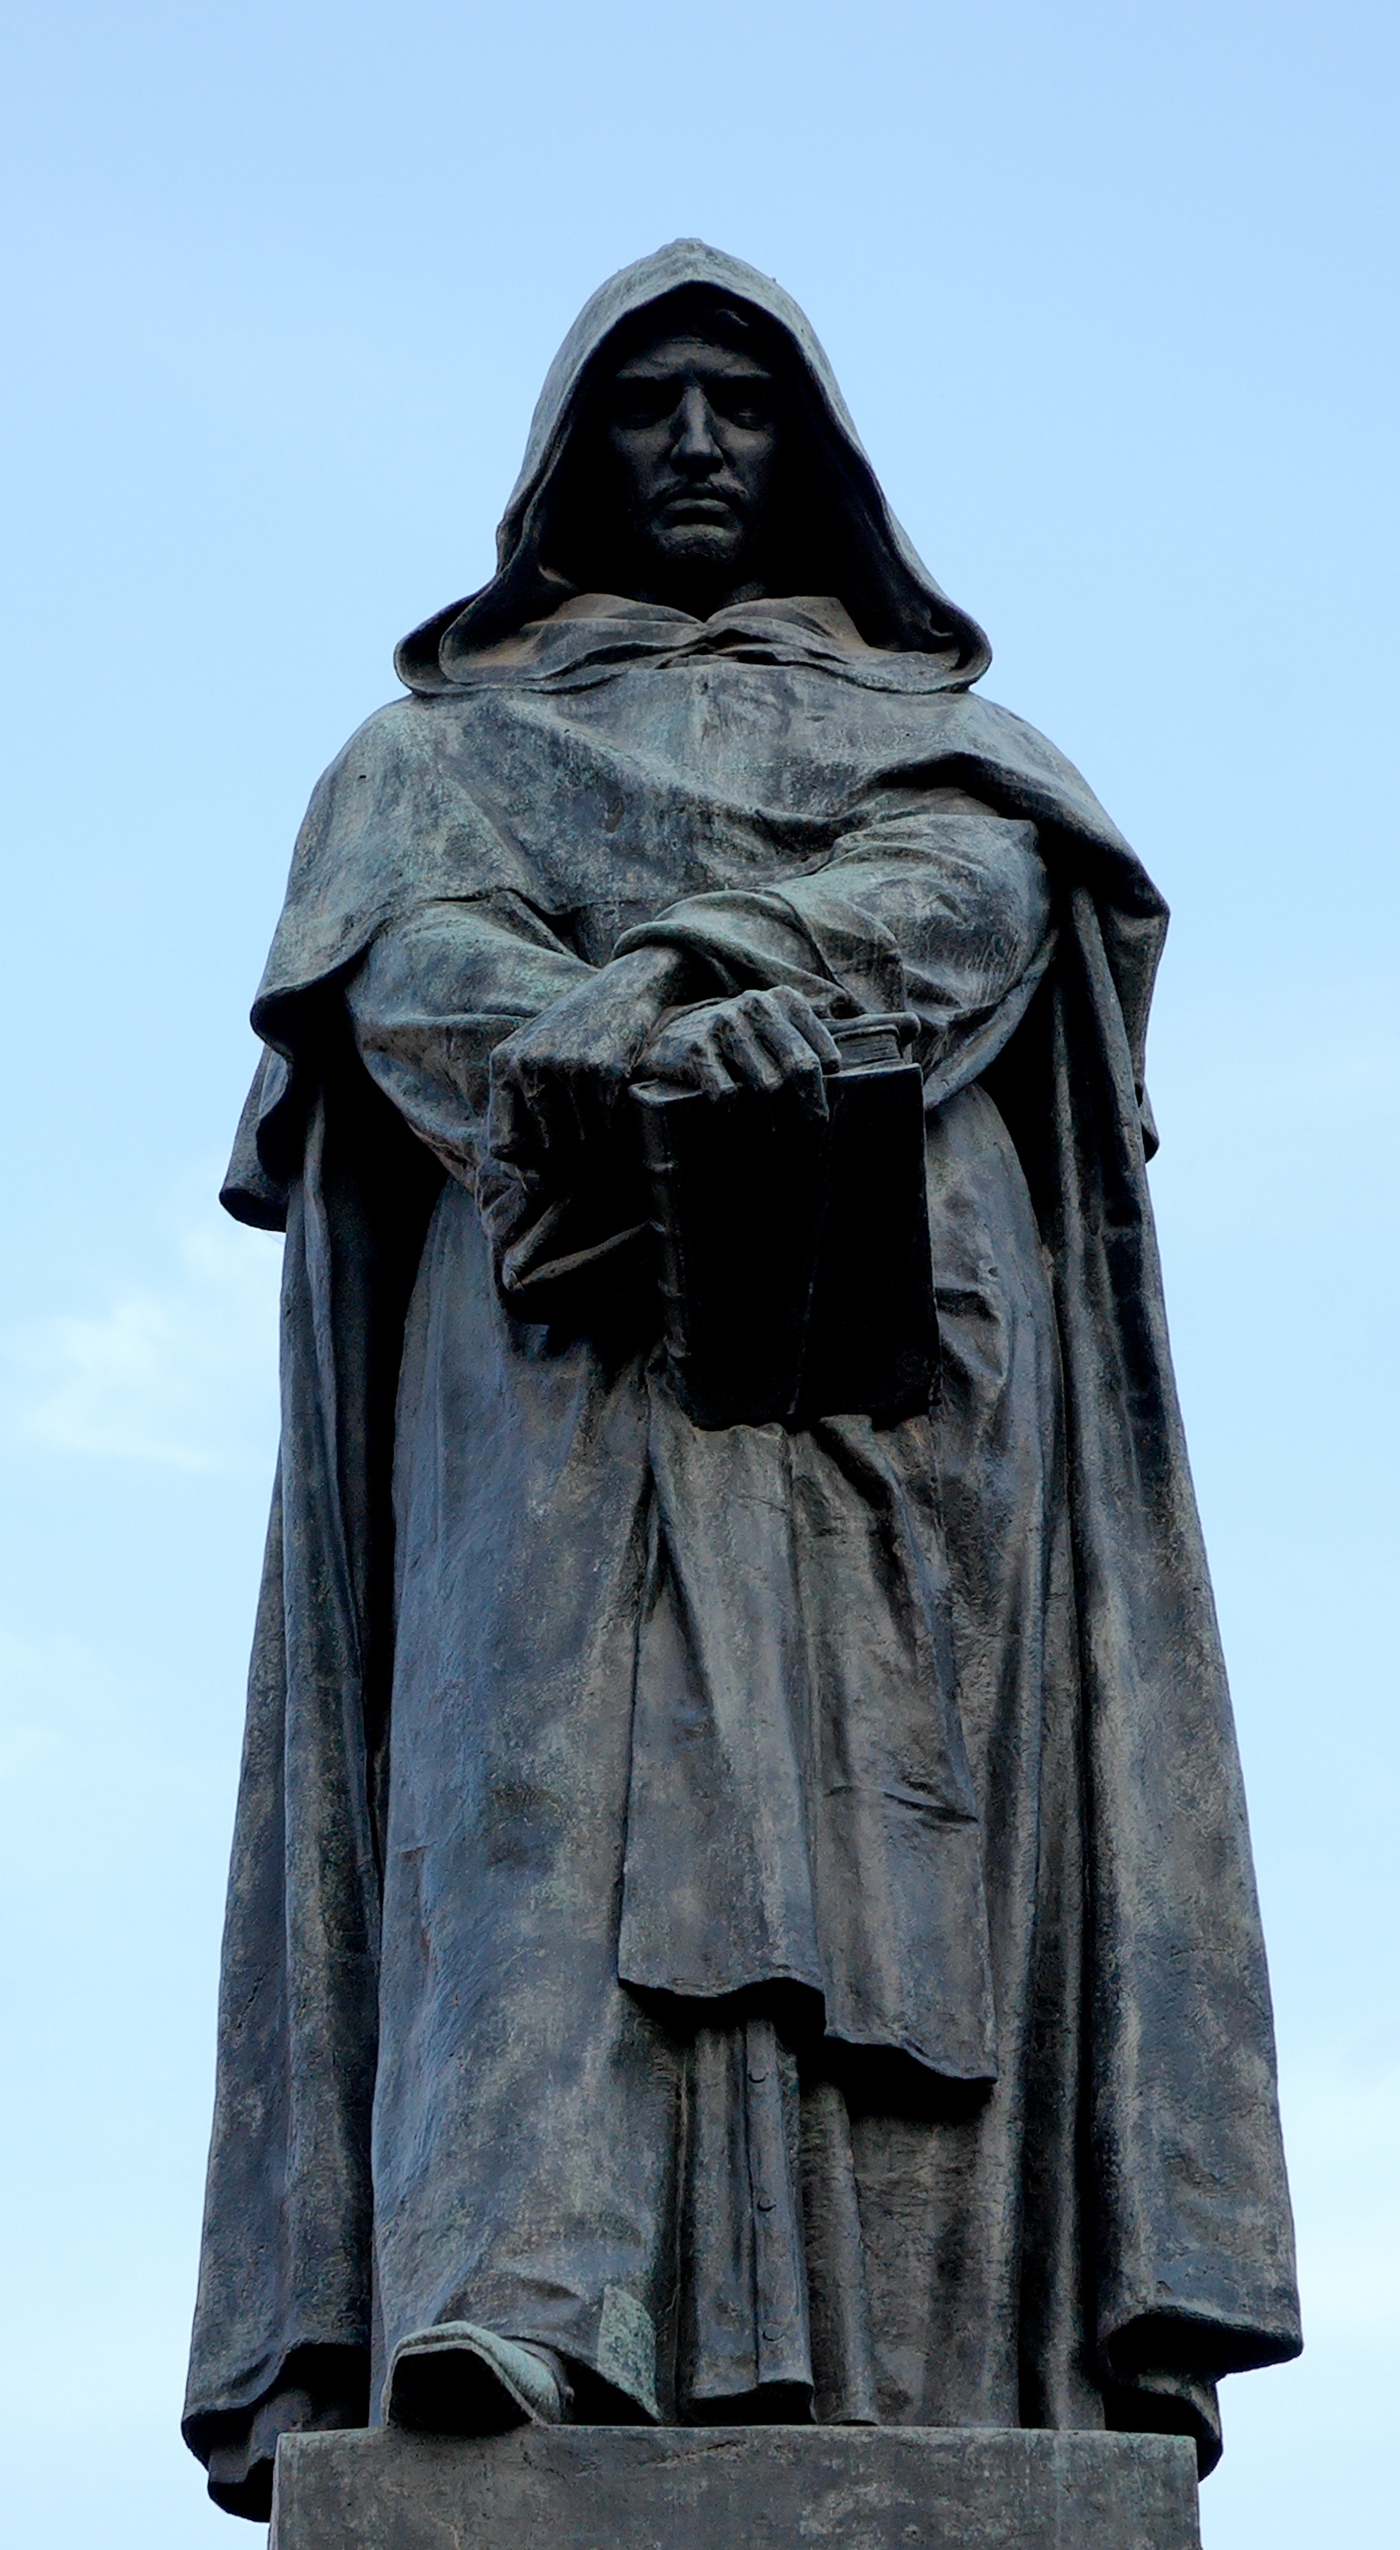 Giordano Bruno, Dominican, Philosopher, Astronomer, Mathematician (1548 – February 17, 1600)